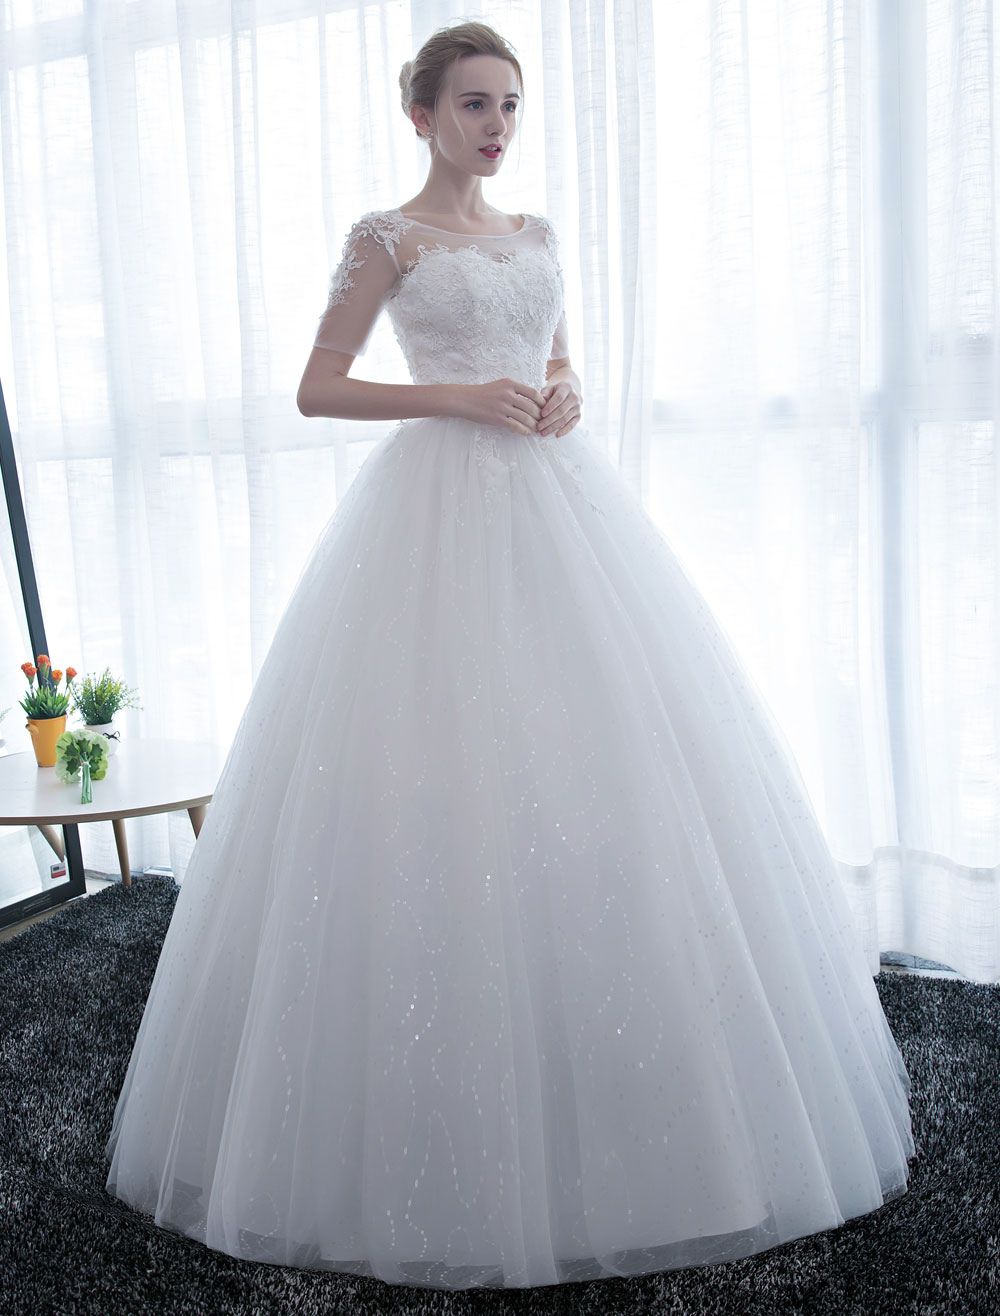 Buy Ivory Wedding Dress Princess Ball Gown Bridal Dress Half Sleeve Lace Applique Pearls Beaded Sweetheart Floor Length Bridal Gown for $131.99 in Milanoo store